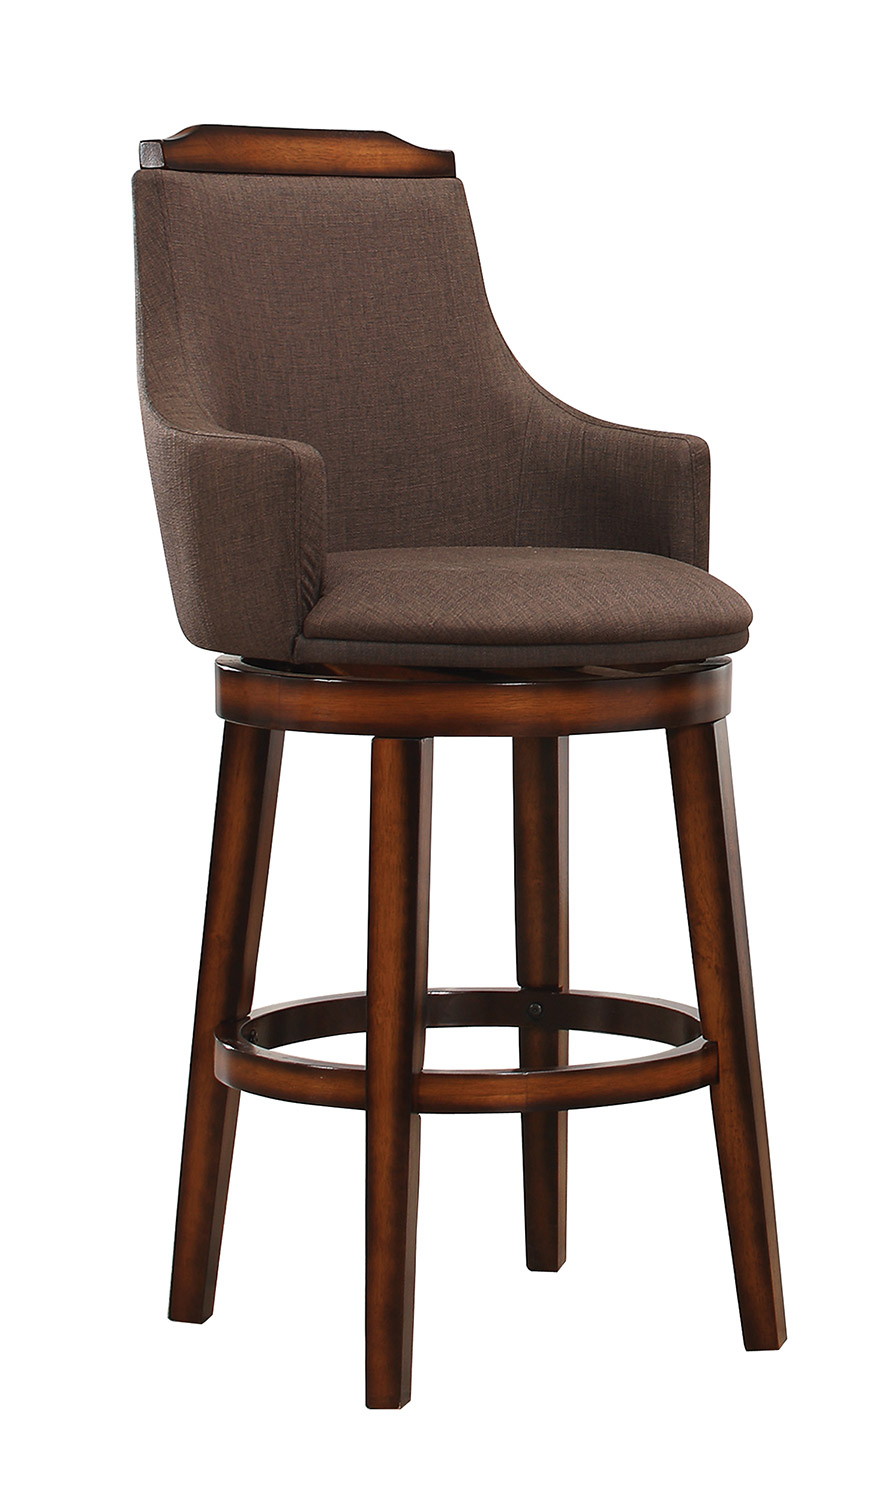 Homelegance Bayshore Swivel Counter Height Chair - Chocolate/Linen